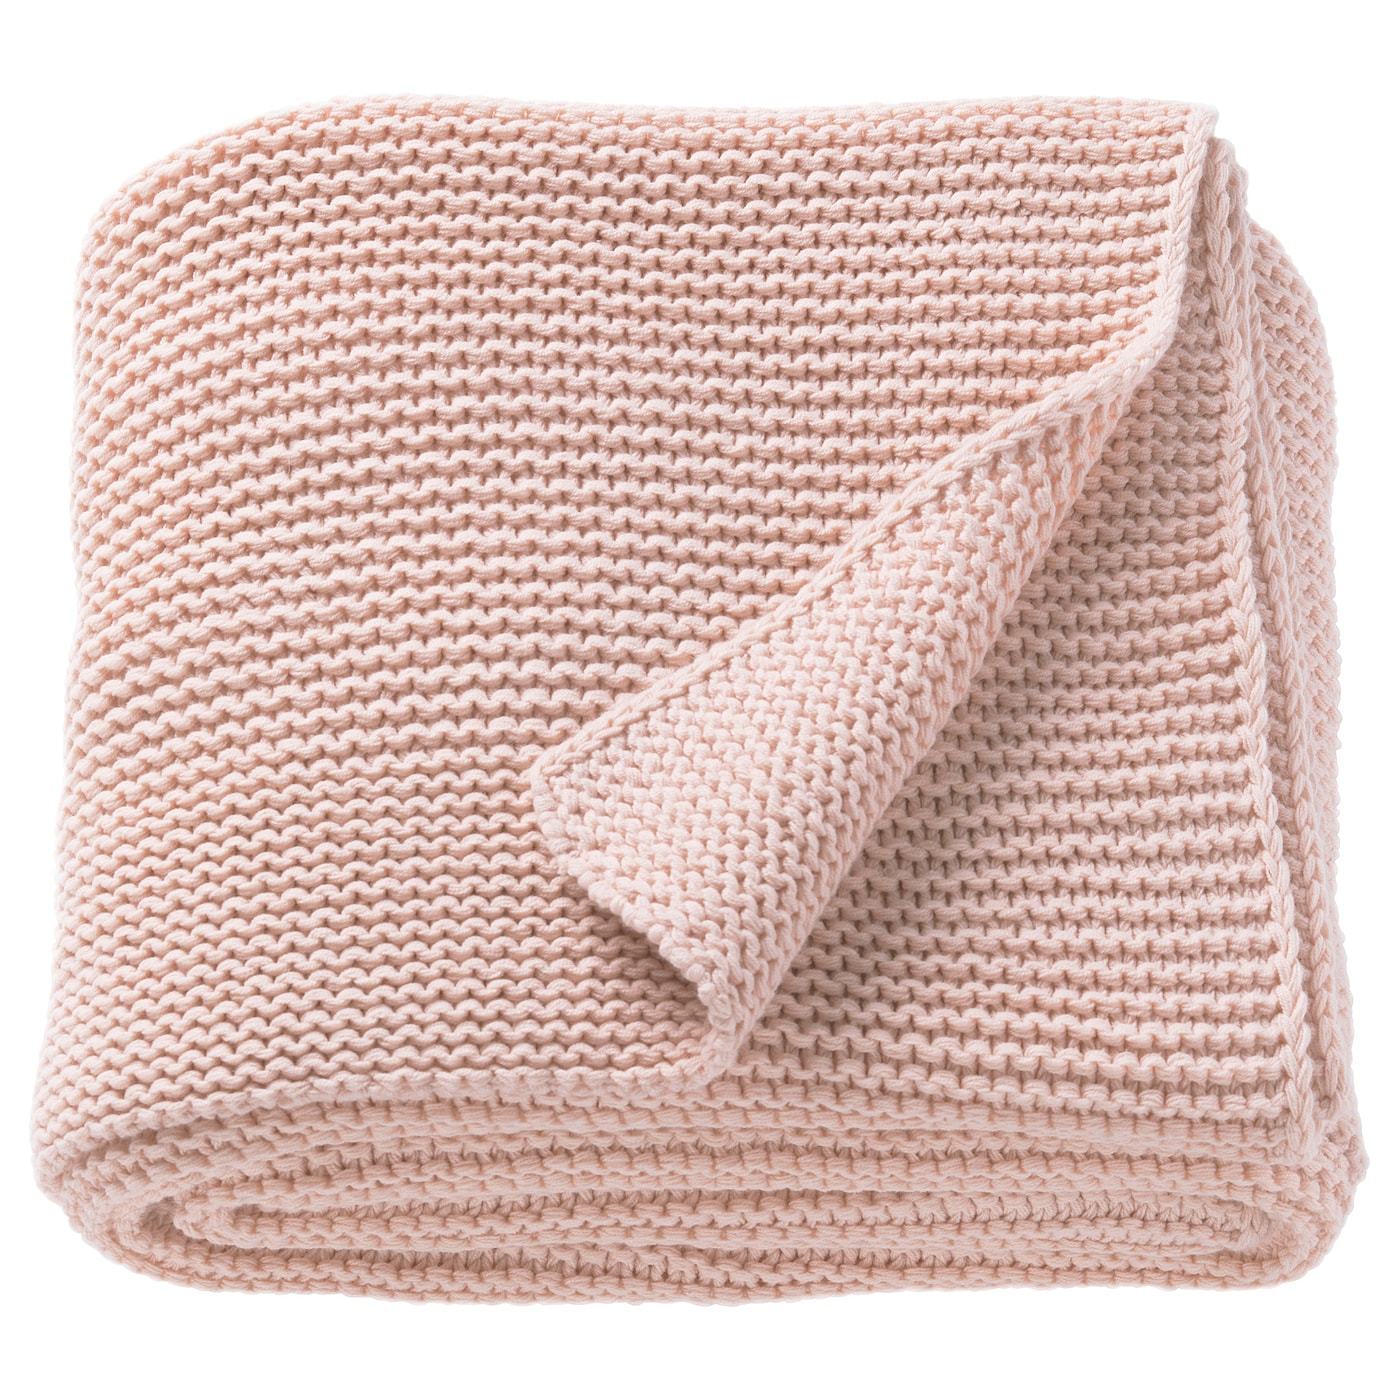 IKEA INGABRITTA throw Soft knitted throw that feels nice against the skin.